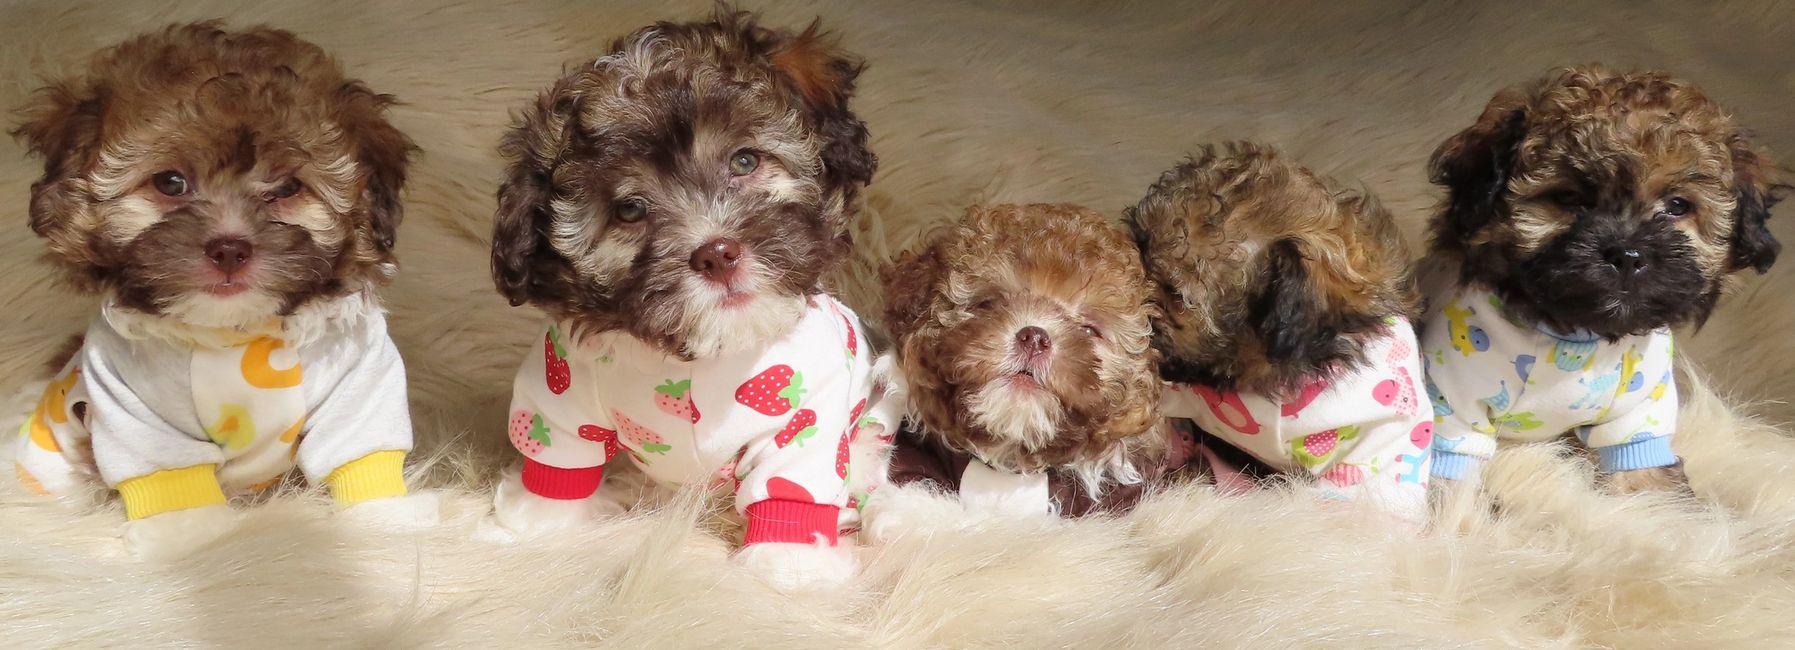 Teddy bear Zuchon (Shichon or Shih Tzu Bichon) puppies in onesies - Happy healthy smart comical affectionate highly trainable great service or therapy dogs  excellent companion or family dog - www.tinyteddys.com - Tiny Teddies